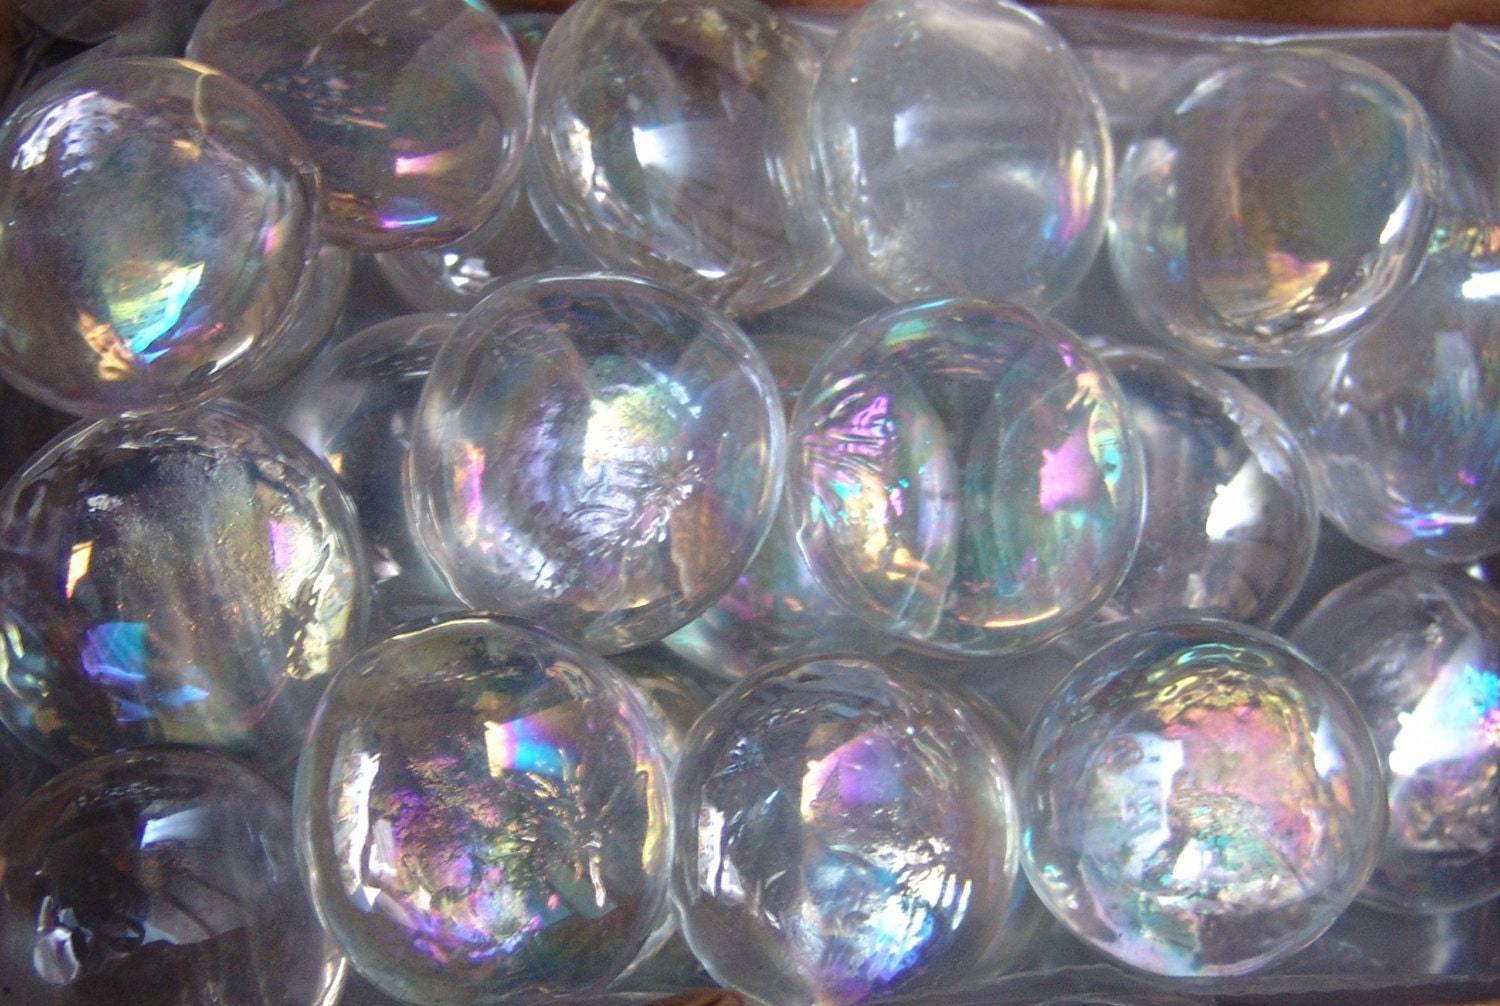 20 Large Clear Iridized Glass Gems Stones Mosaic Pebbles